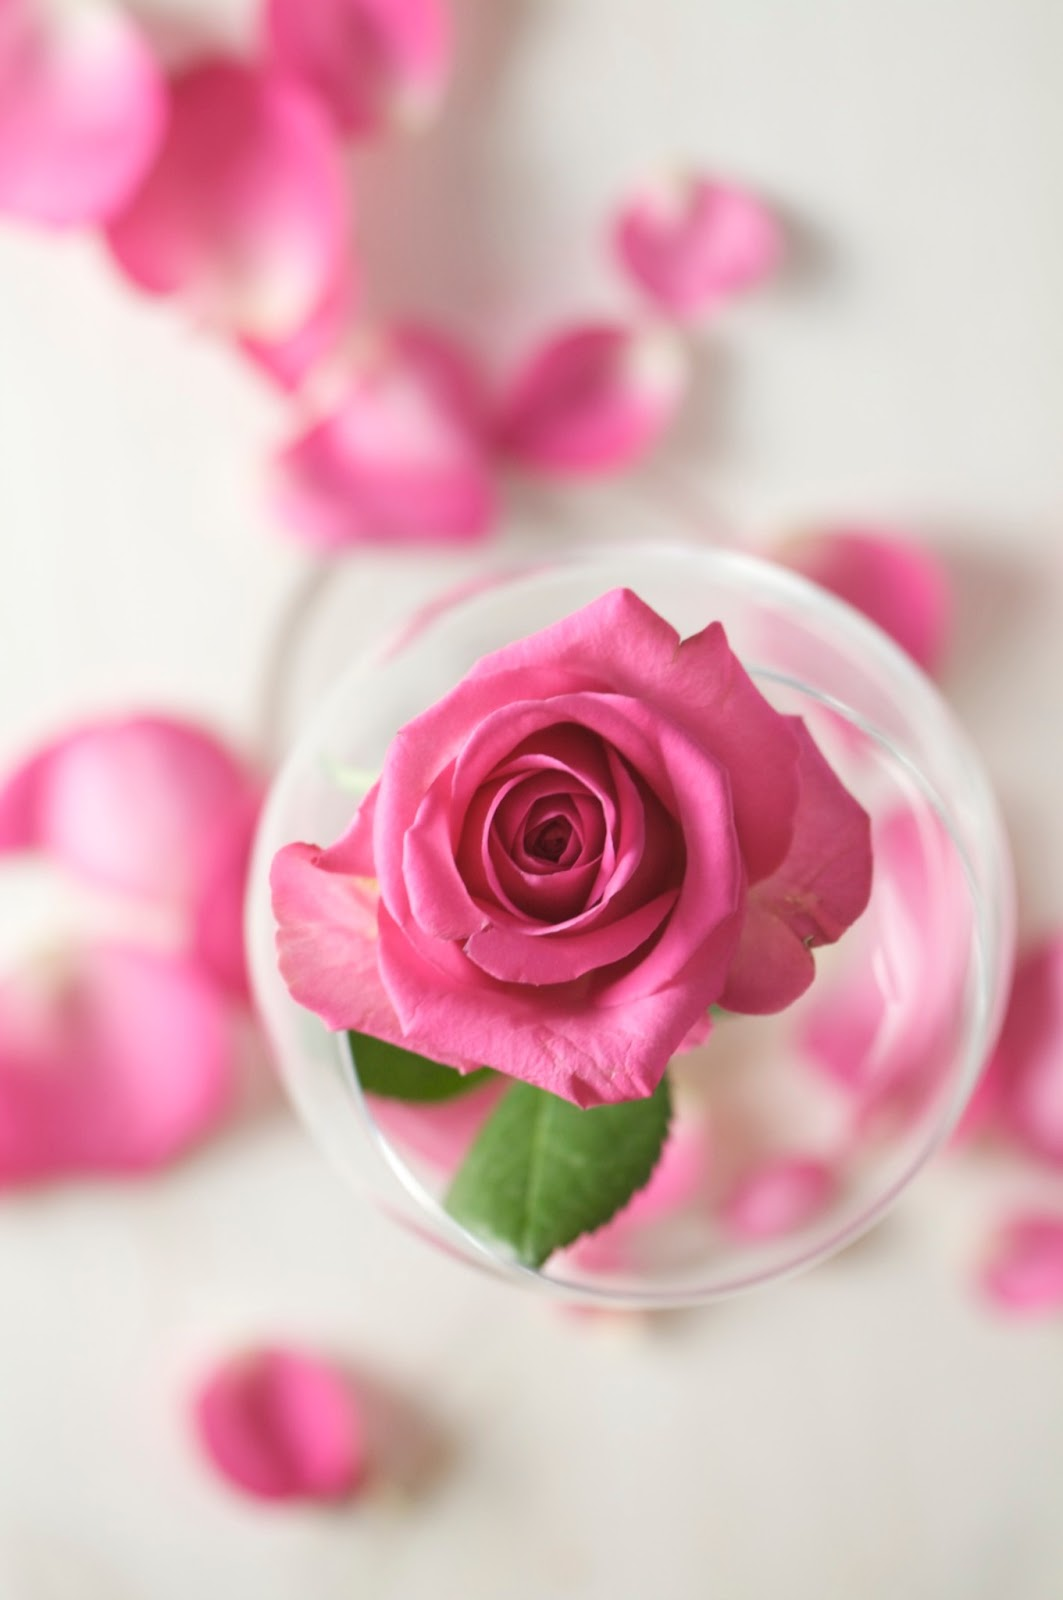 How To Make Your Own Rose Water To Refresh Your Skin- httpusefuldiyprojects.com(3)